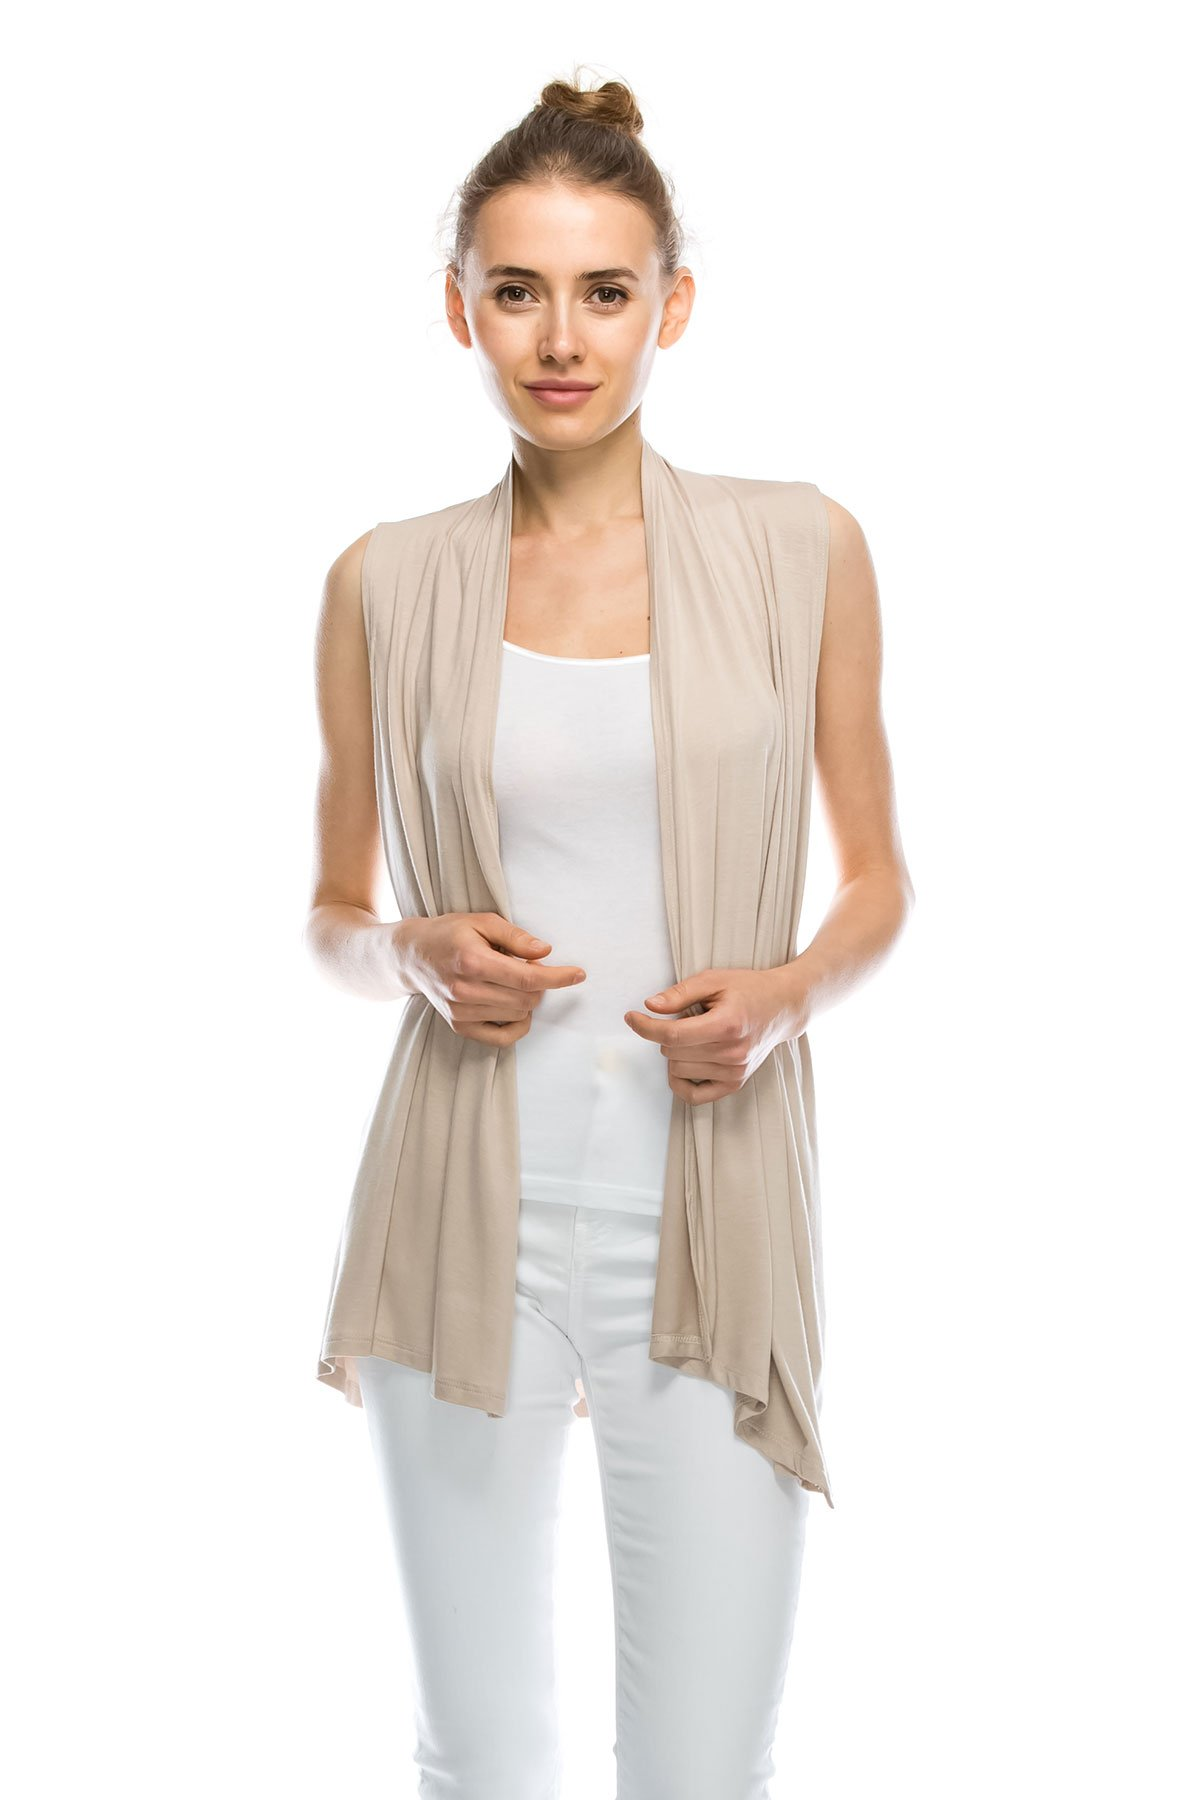 J Doe Style Womens Lightweight Sleeveless Open Front Cardigan, M, Khaki